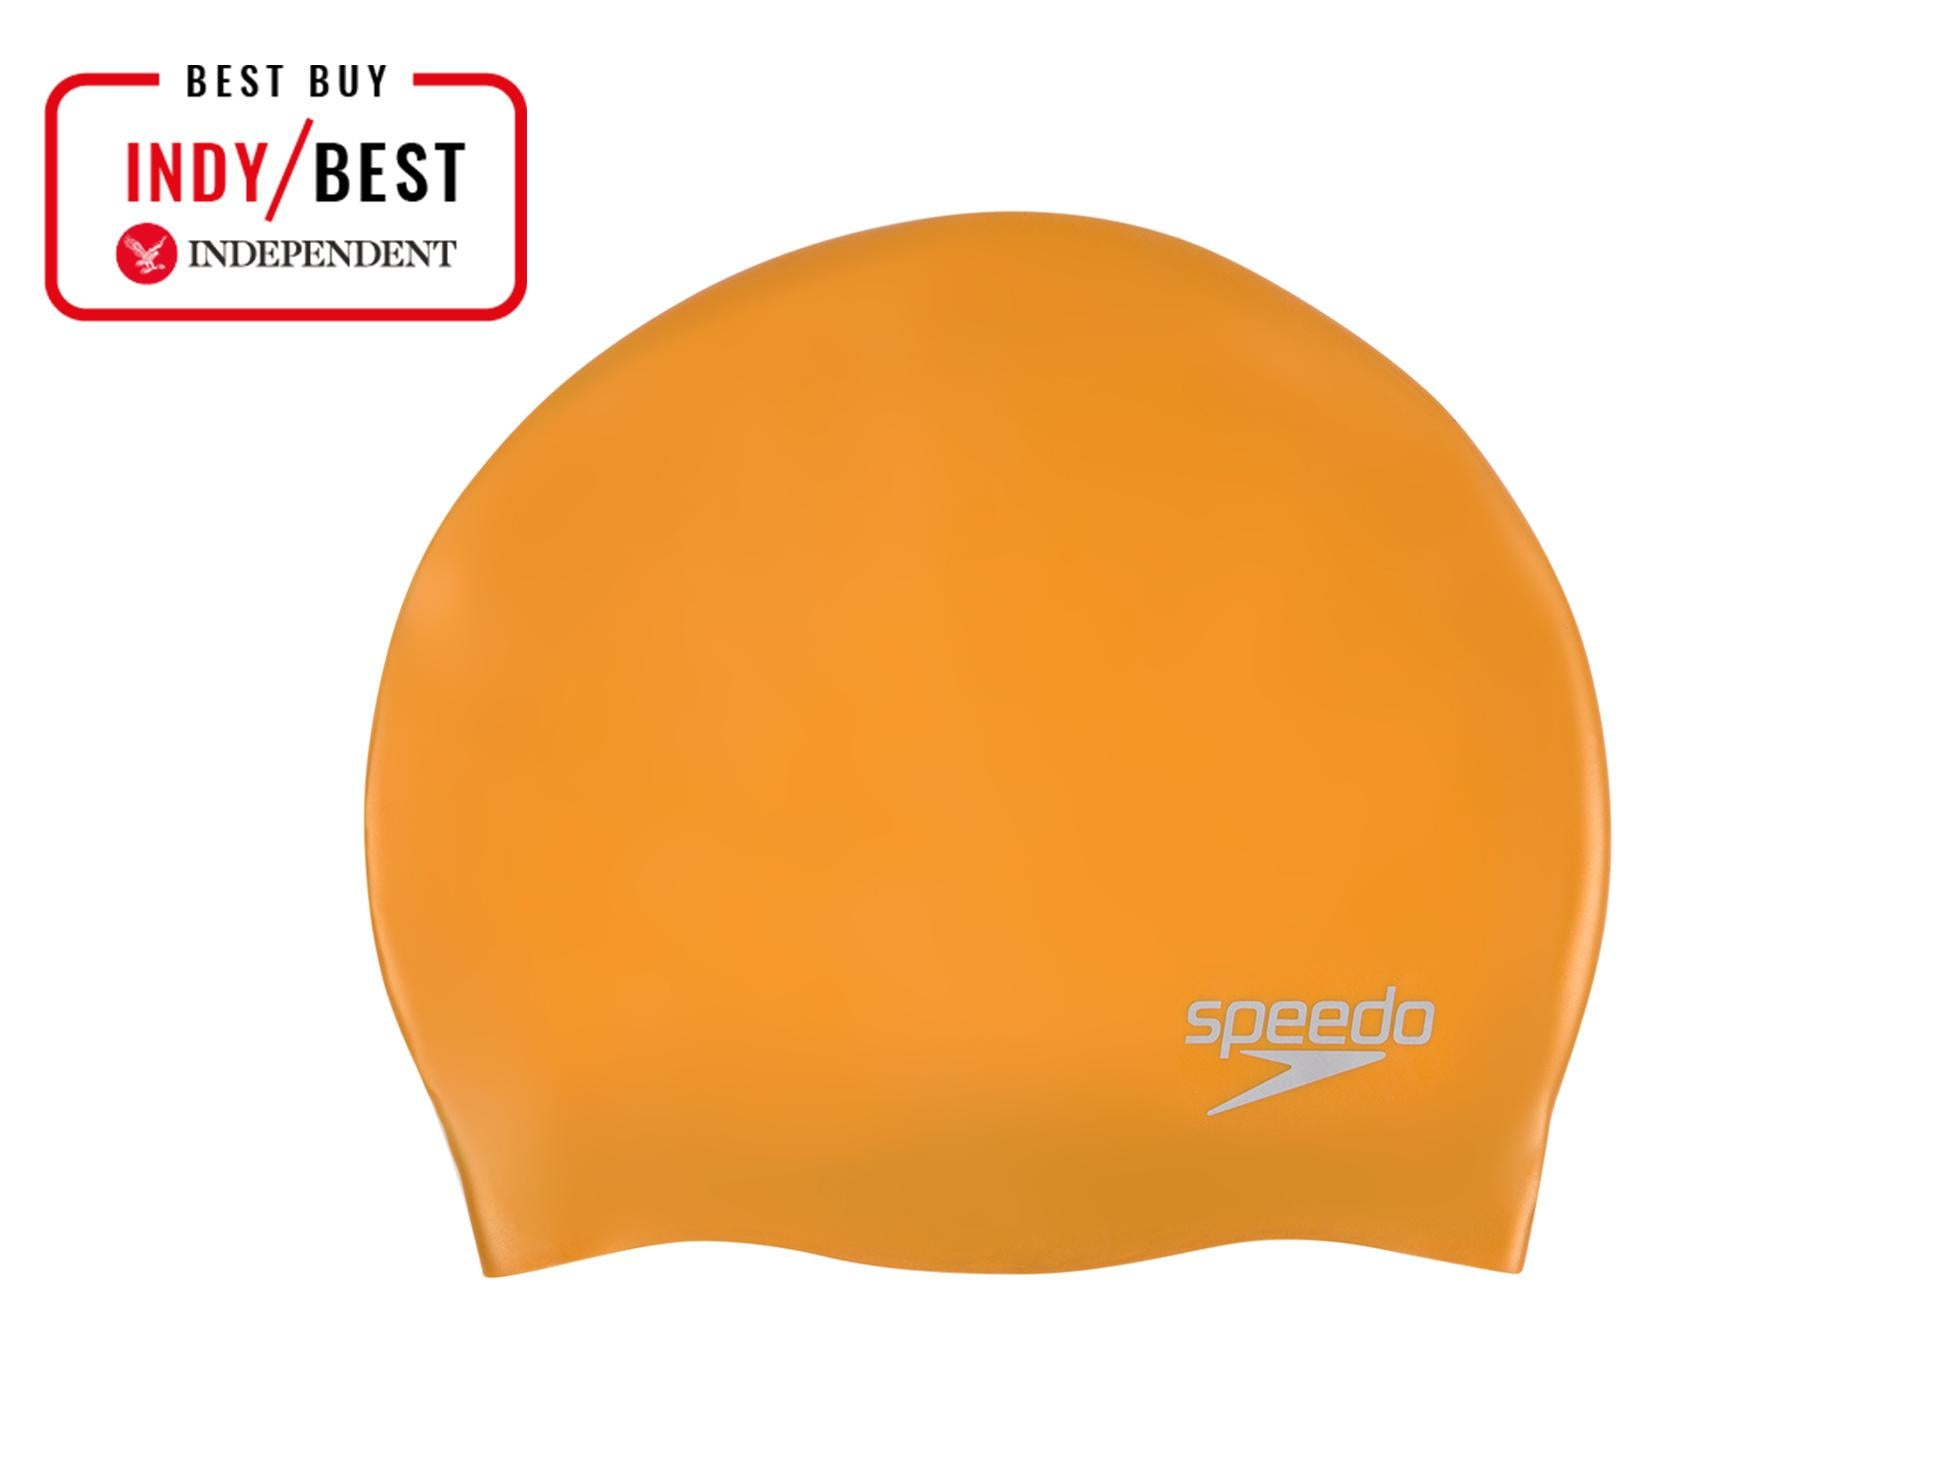 7e2b71d3130 Speedo Plain Moulded Silicone Cap  £9